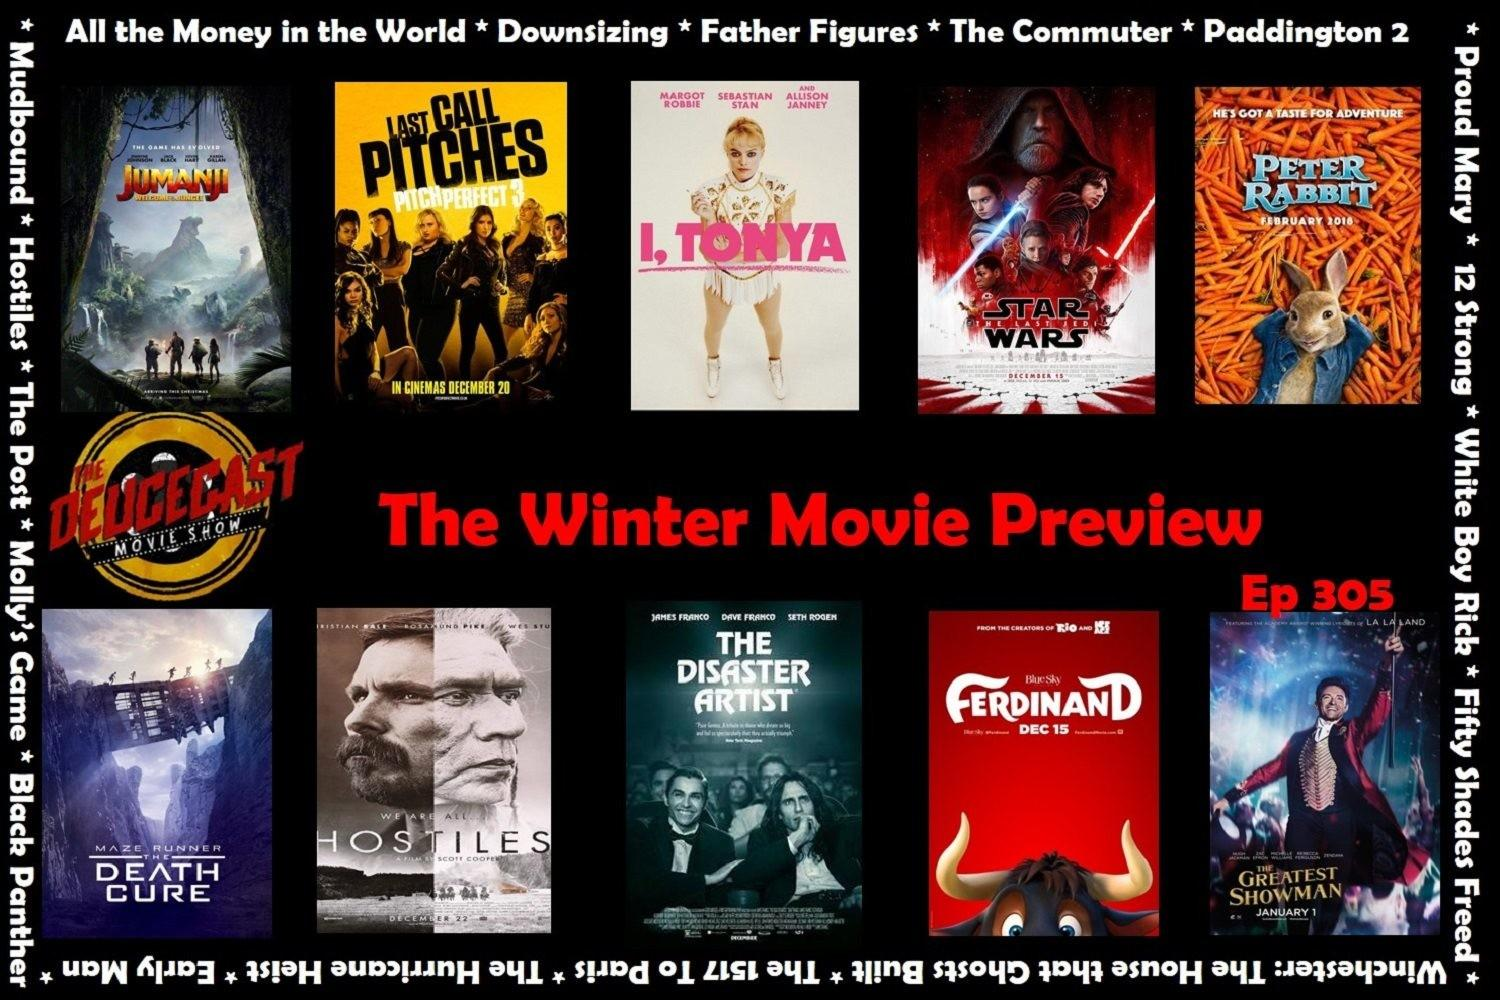 Deucecast Movie Show 305 Winter Preview 2017 2018